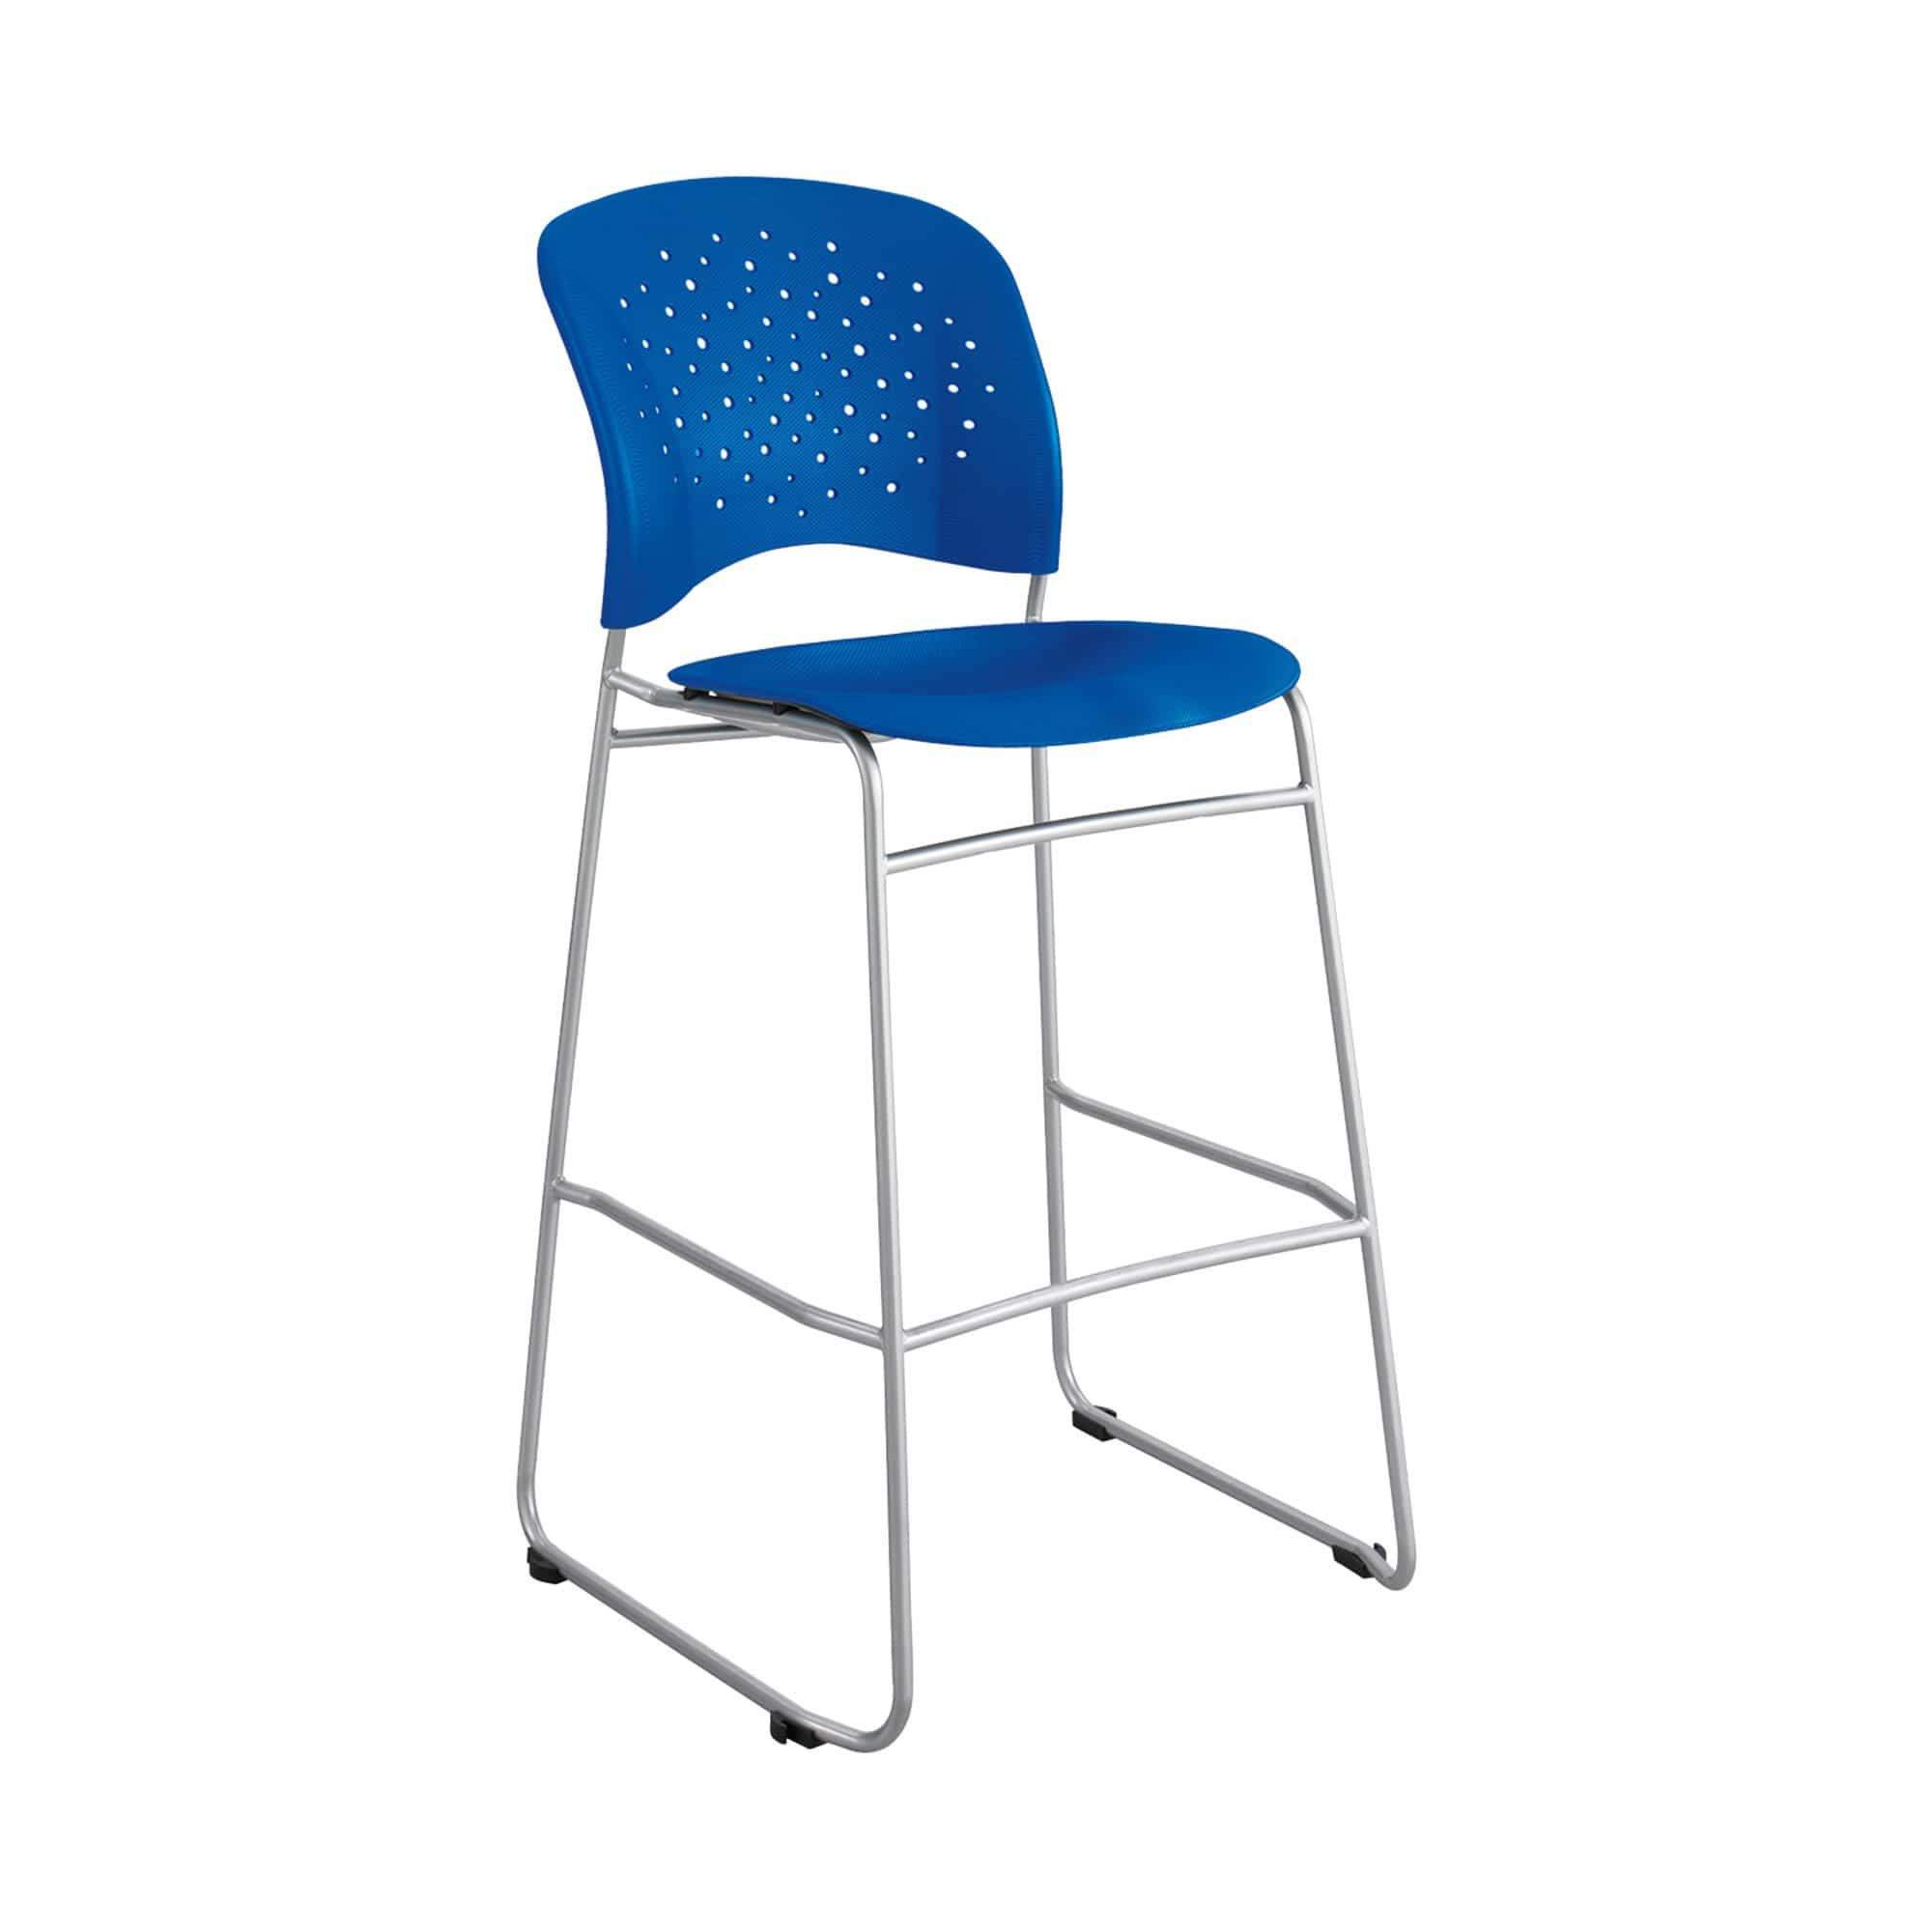 bedinhome - 6806BU Reve™ Restaurant Furniture 250 Lbs Capacity Blue Plastic Bar Bistro-Height Chair Round Back With Silver Frame - Safco - Bistro-Height Chair Round Back